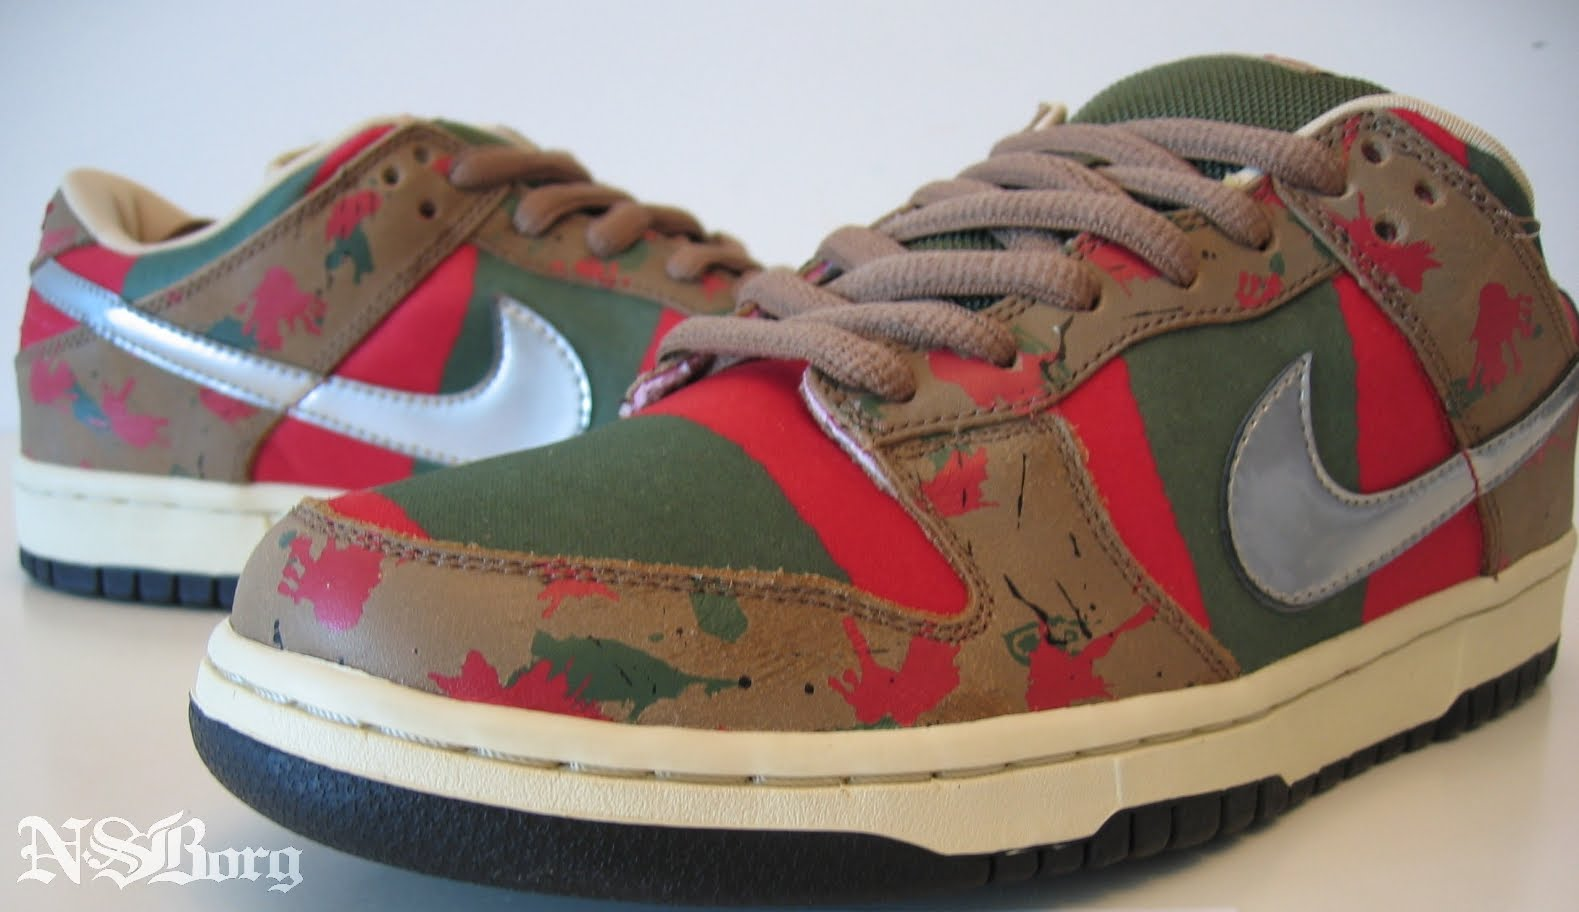 Life Beyond The Hype New Nike Sb Joints